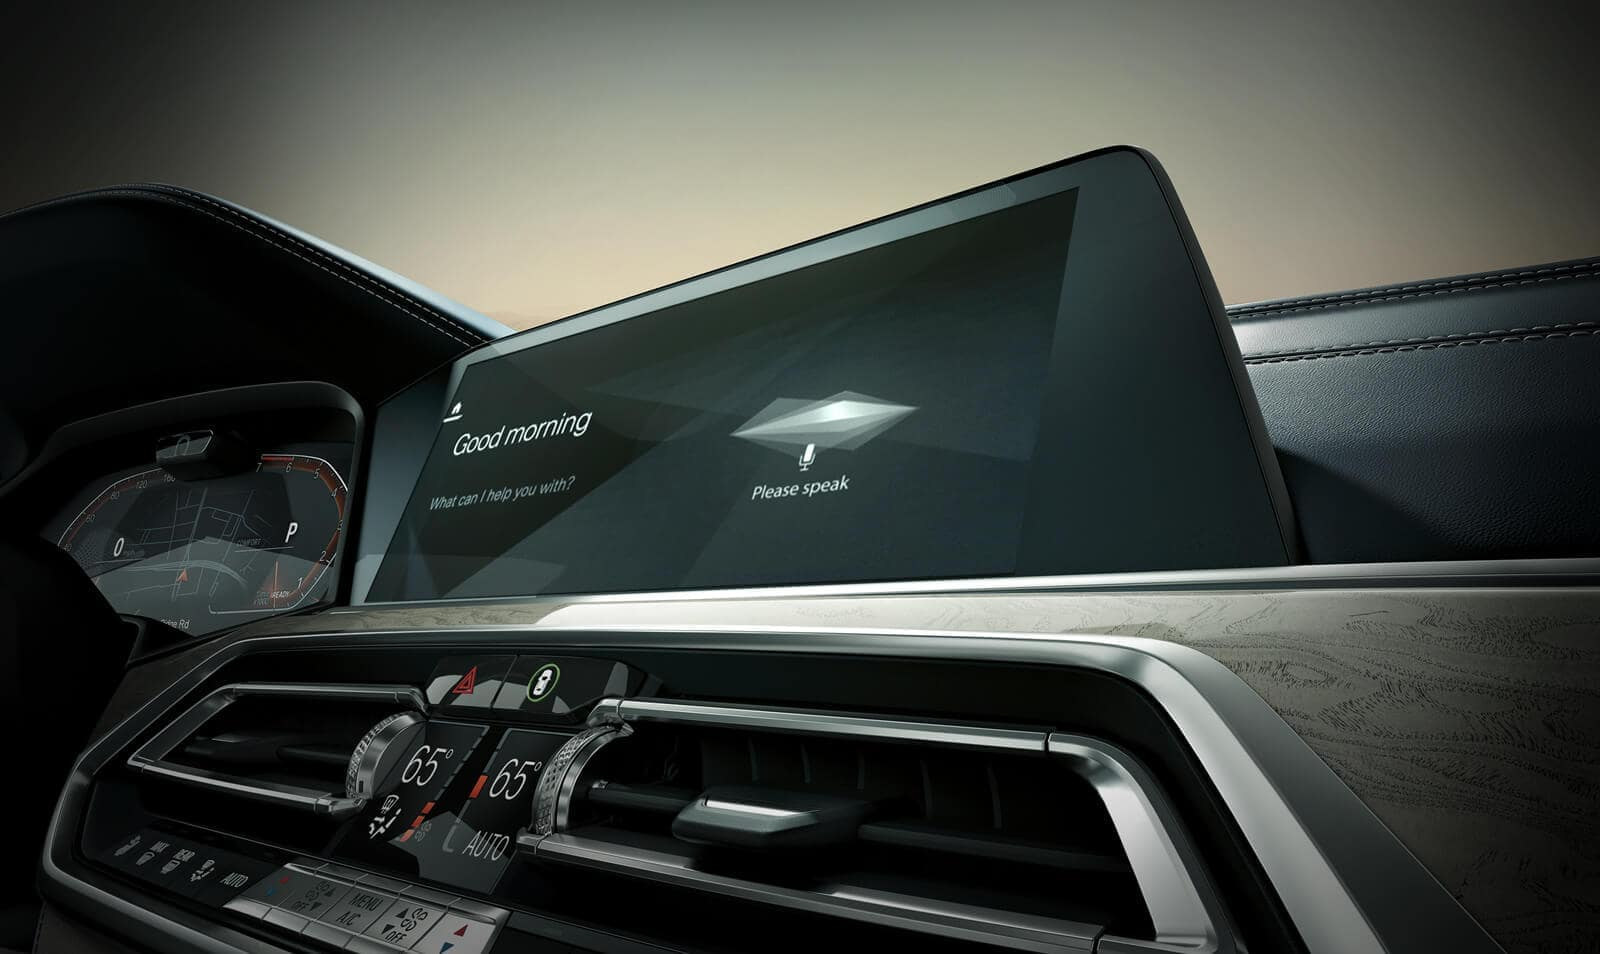 Interior picture of the BMW X7 showing the Intelligent Assistant feature.